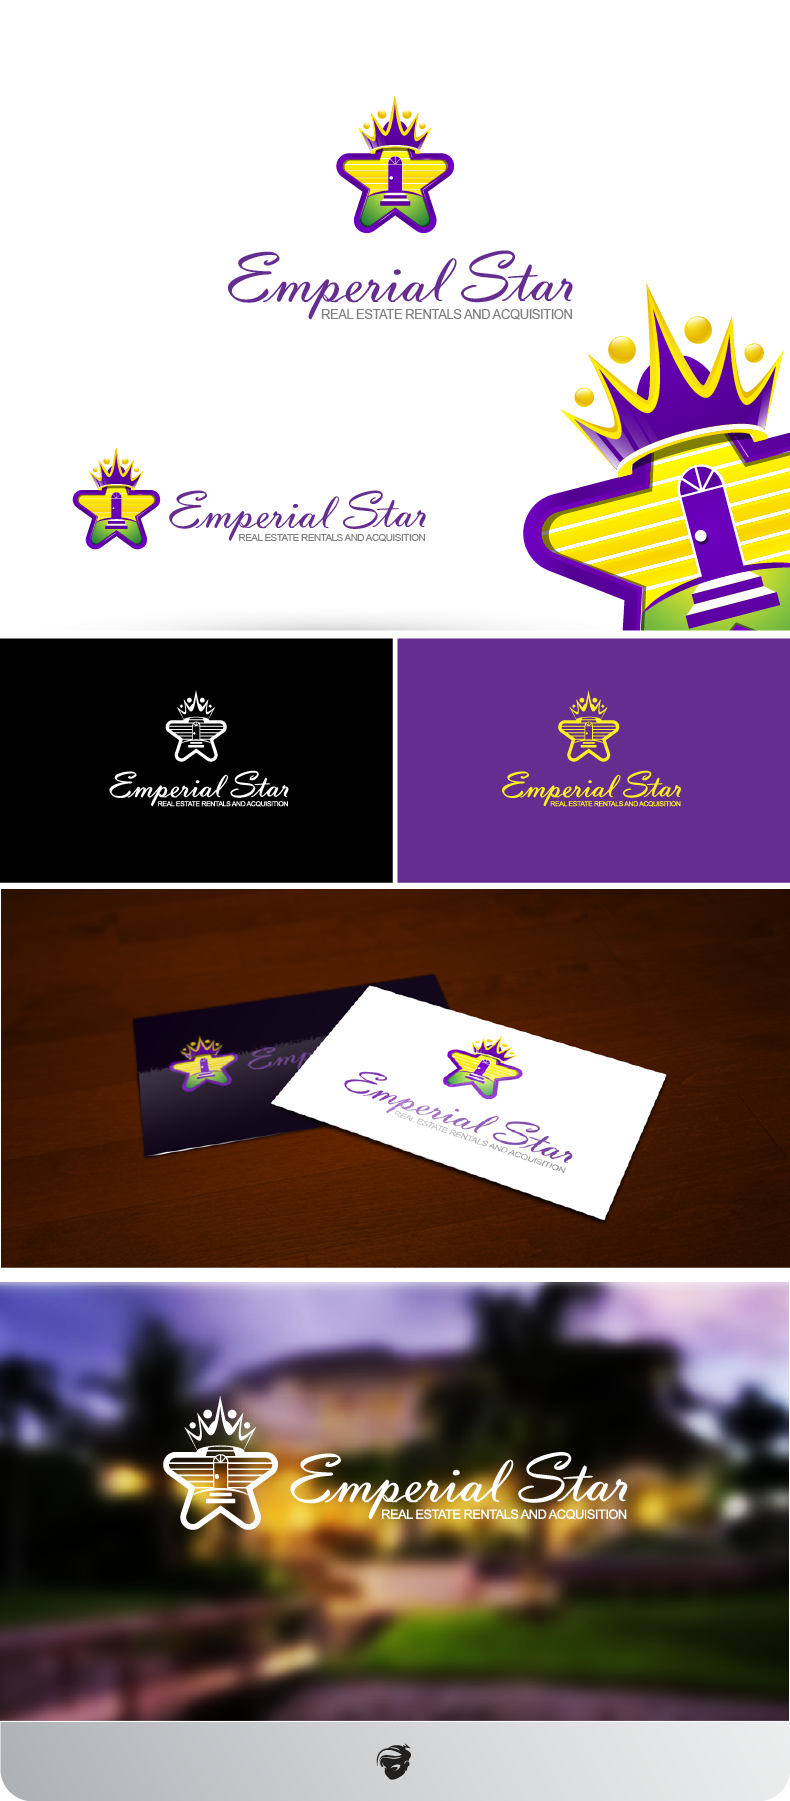 Logo Design by zesthar - Entry No. 165 in the Logo Design Contest Emperial Star Logo Design.